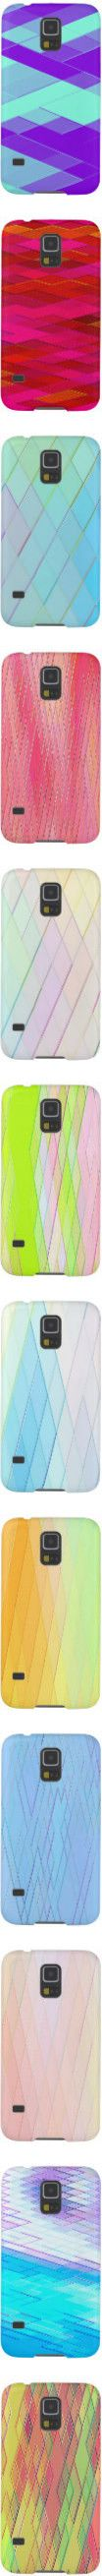 #Samsung #Galaxy #S5 #Robert #S. #Lee #galaxyS5 #galaxyS4 #case #cover #skin #colours #art #artist #graphic #mobile #cellphone #men #women #ladies #kids #children #boys #girls #love #design #color   #customizable  Re-Created Vertices Galaxy S5 by robertsleeart on Polyvore featuring galaxy, Samsung, S5, women's fashion, accessories and tech accessories